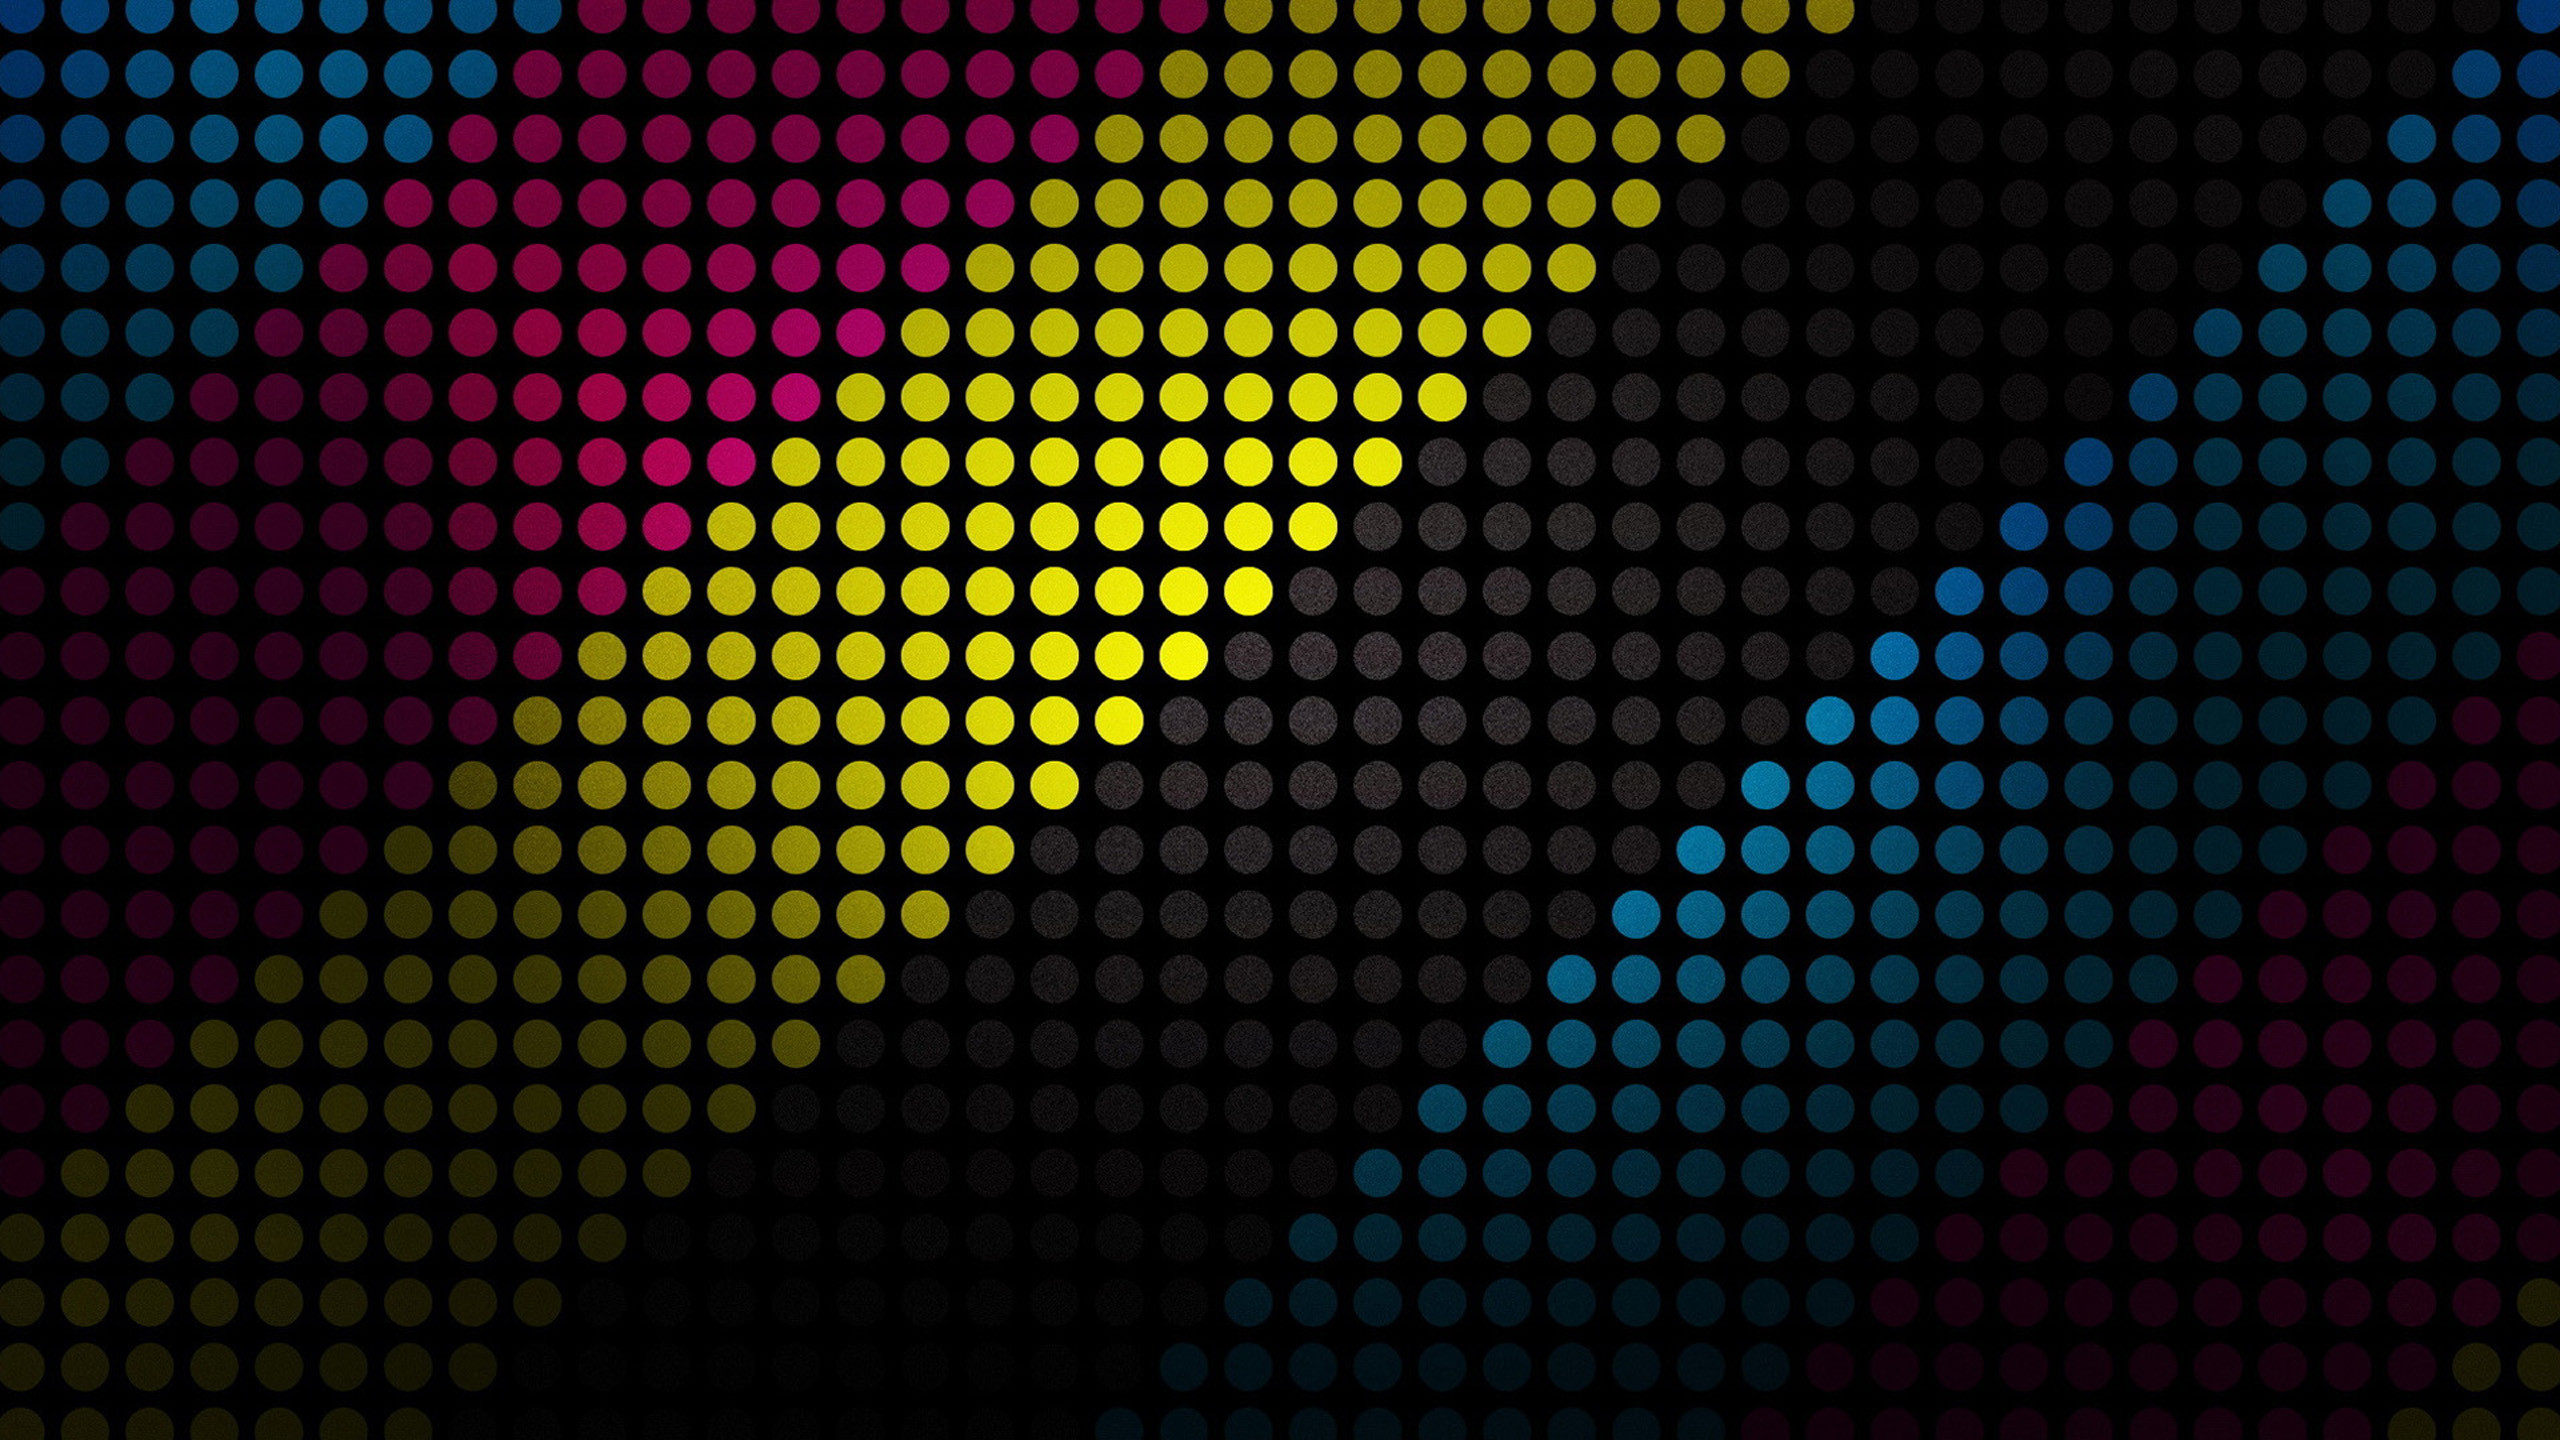 Res: 2560x1440, HOT NEON PINK IPHONE WALLPAPER BACKGROUND Neon Colors Wallpapers ...